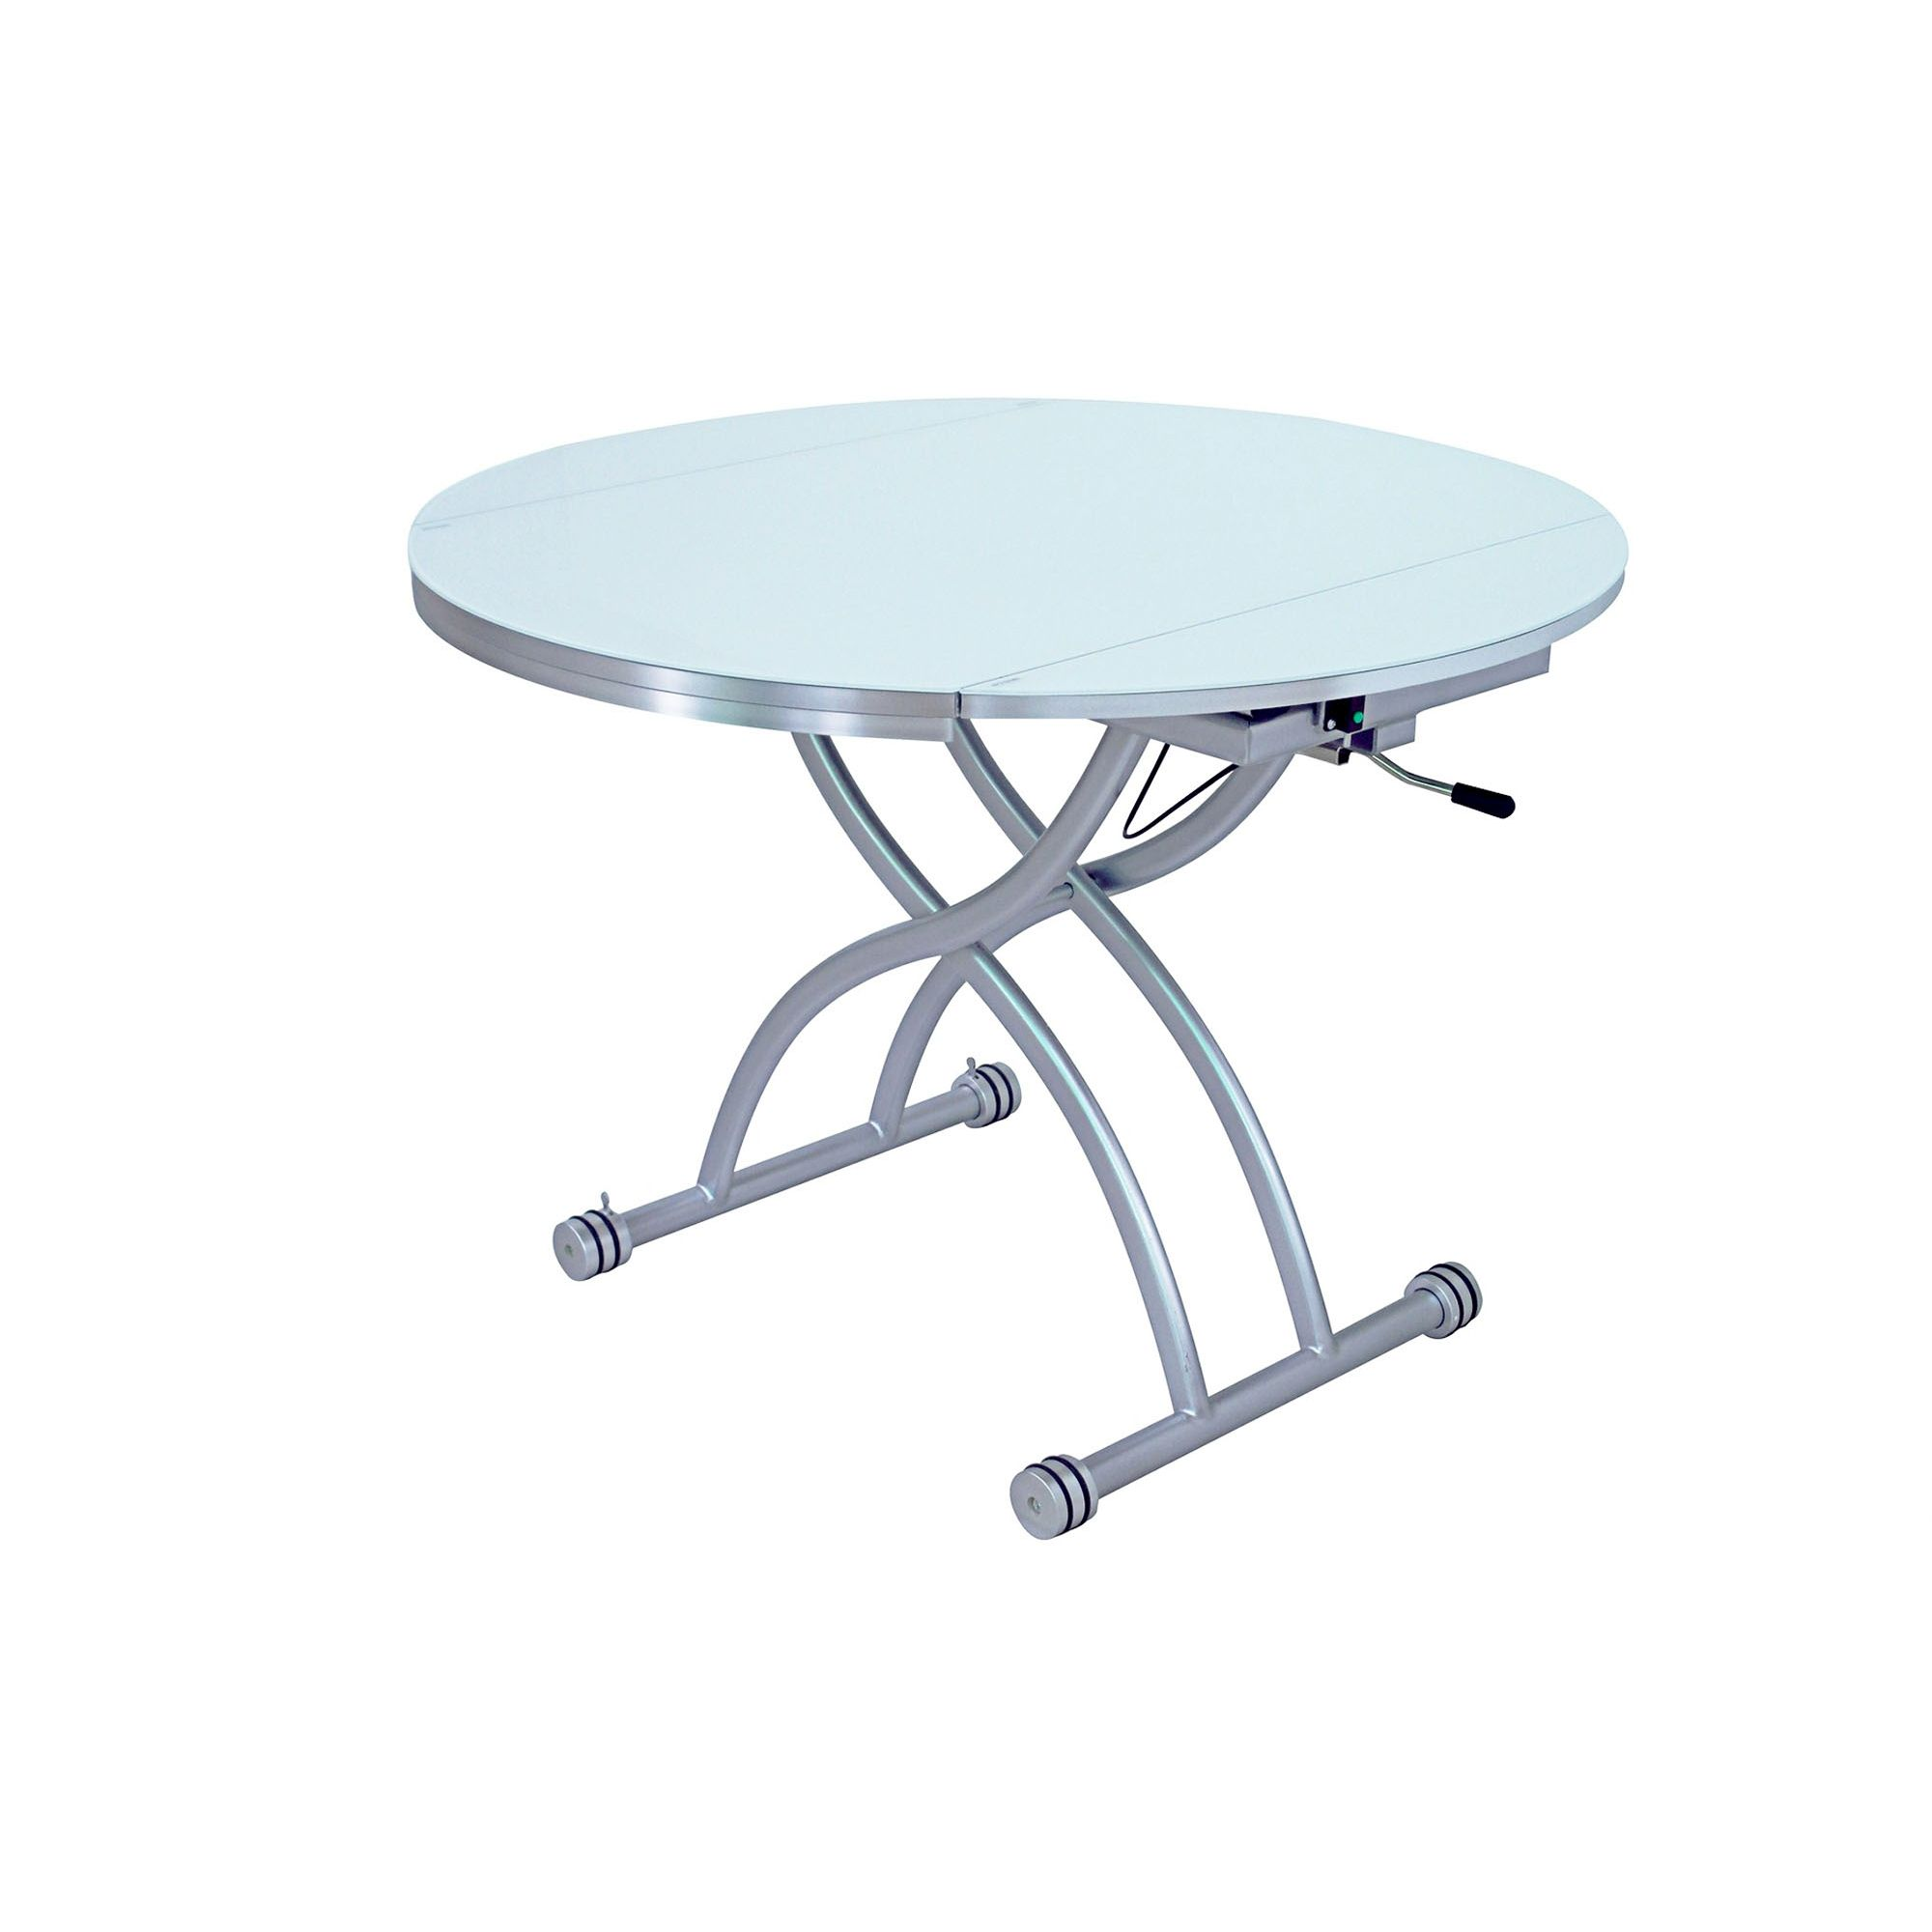 Deco in paris table basse ronde relevable extensible for Table basse relevable extensible but